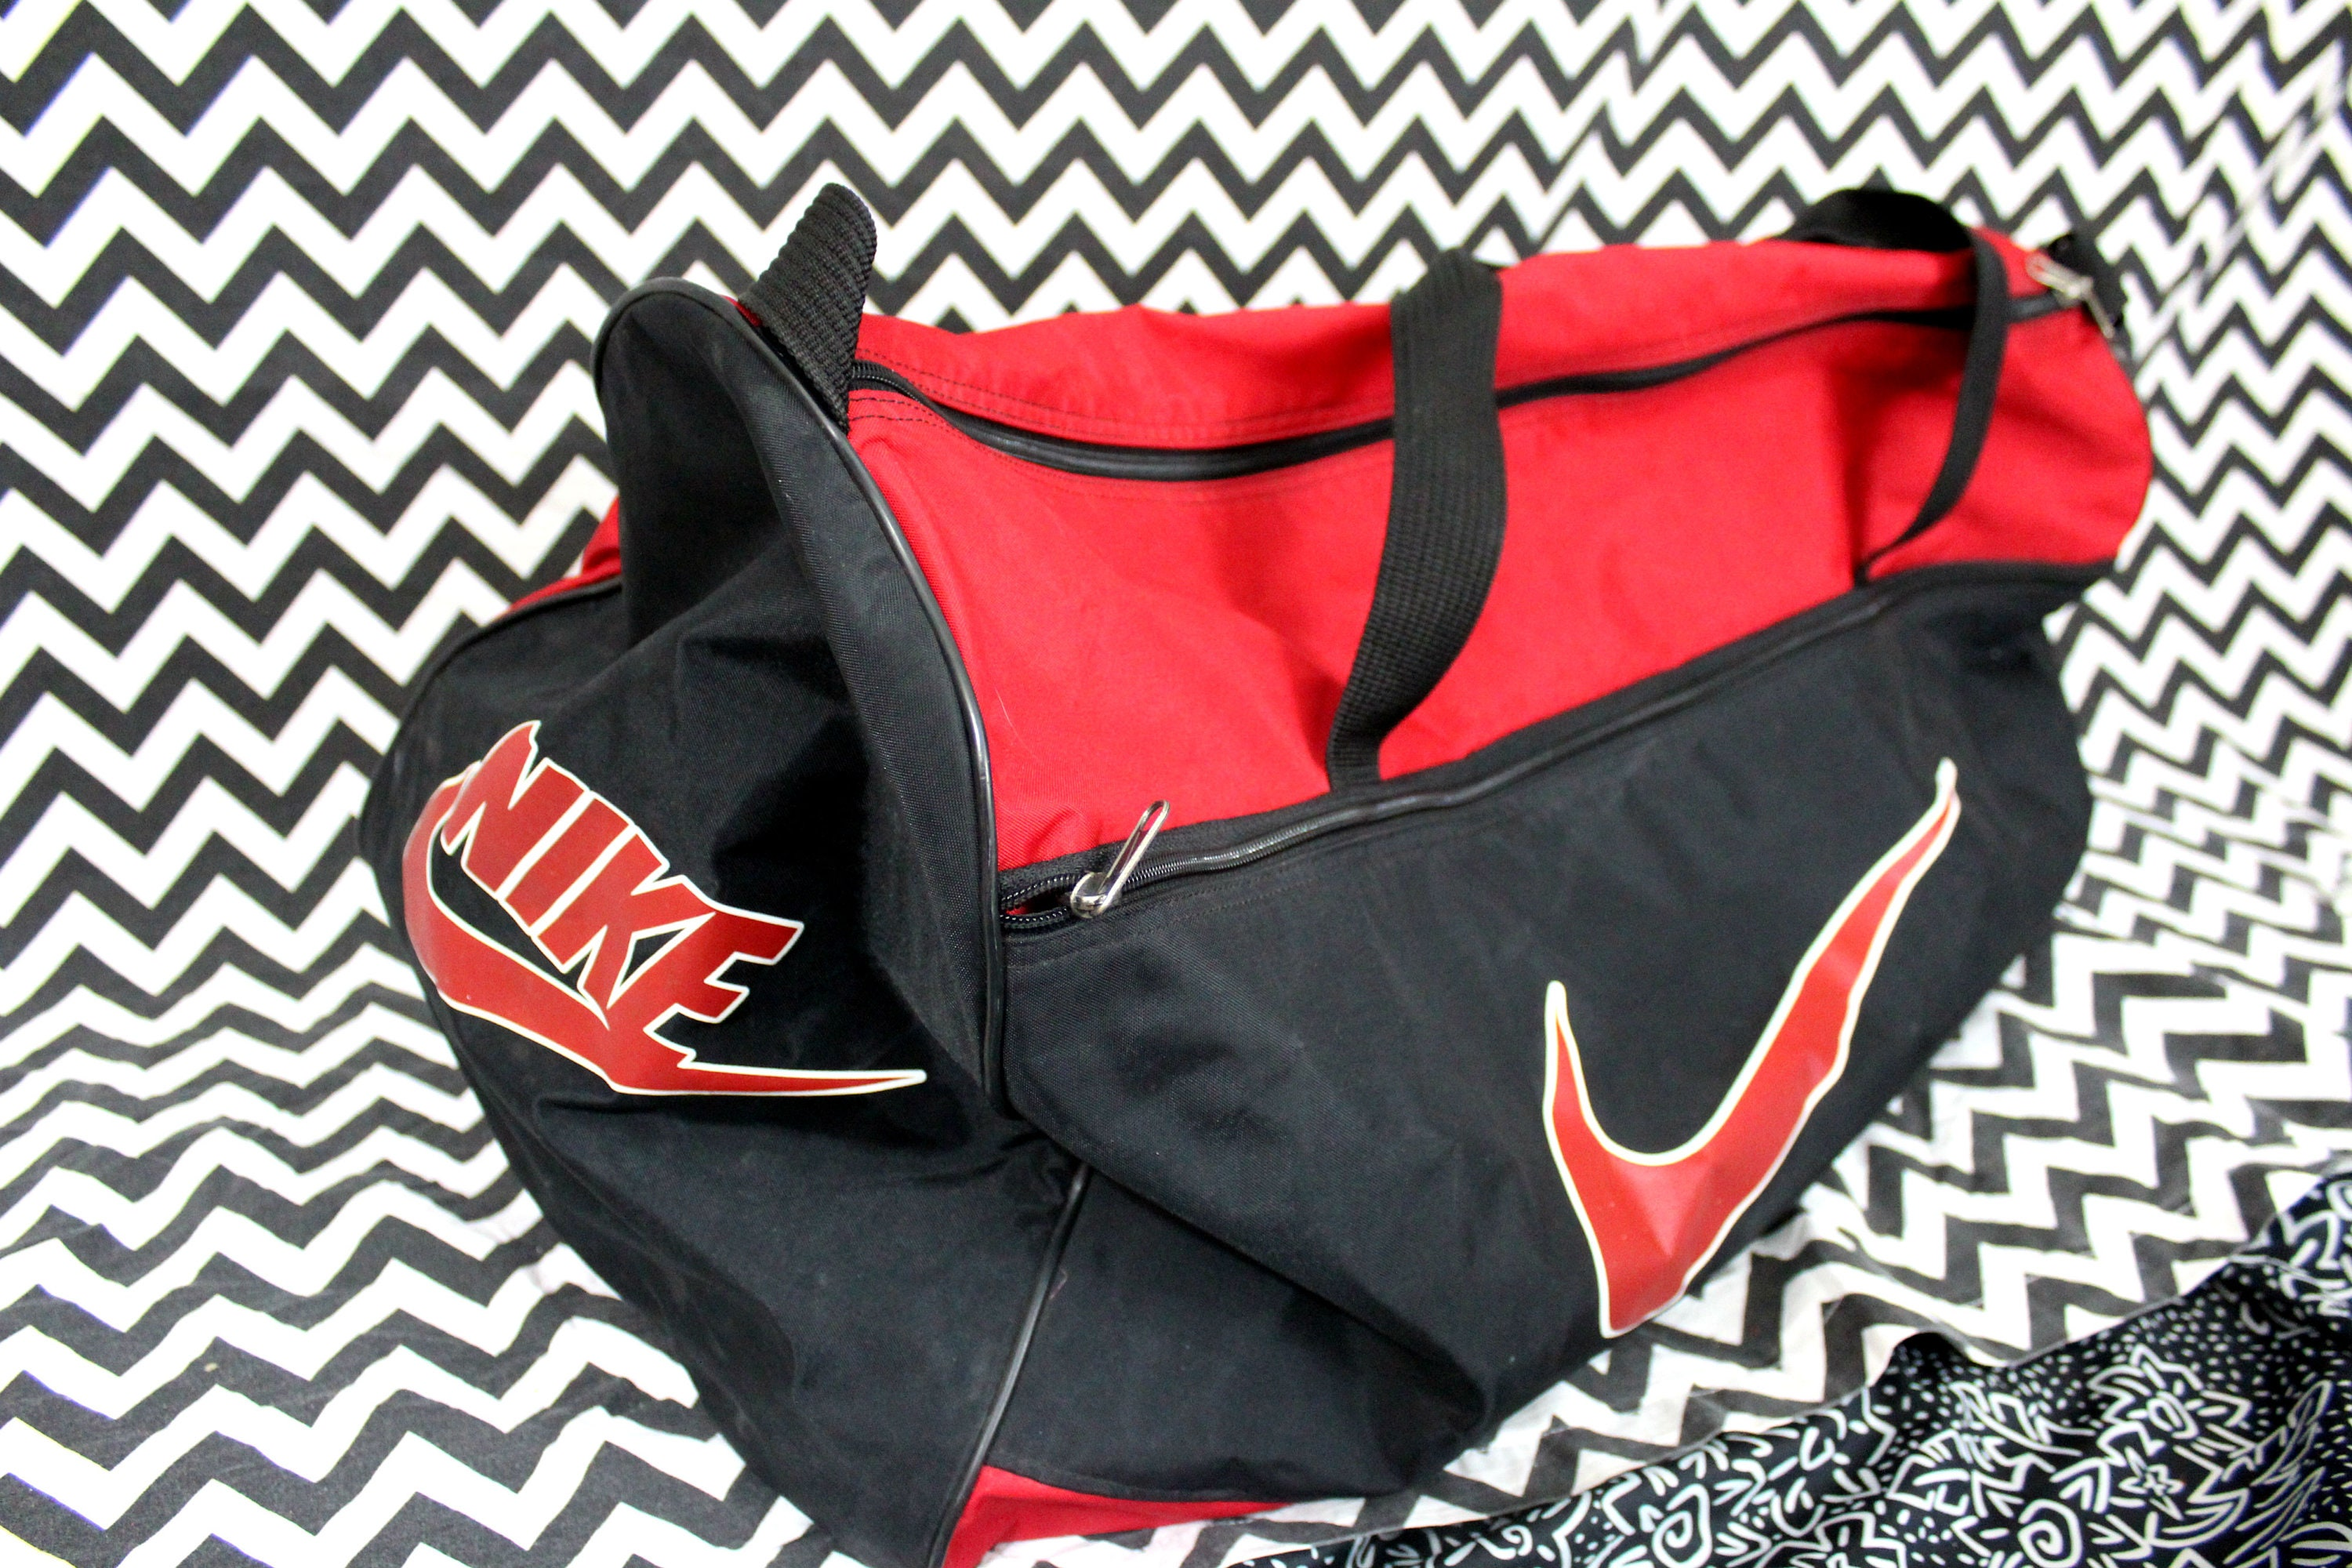 0aa8e47d35cf Vintage Nike Duffel Bag. 90s Hip Hop Overnight Duffel Bag. Retro 80s or 90s  Carry On Bag. Old School Nike Red And Black Logo Duffel Bag.